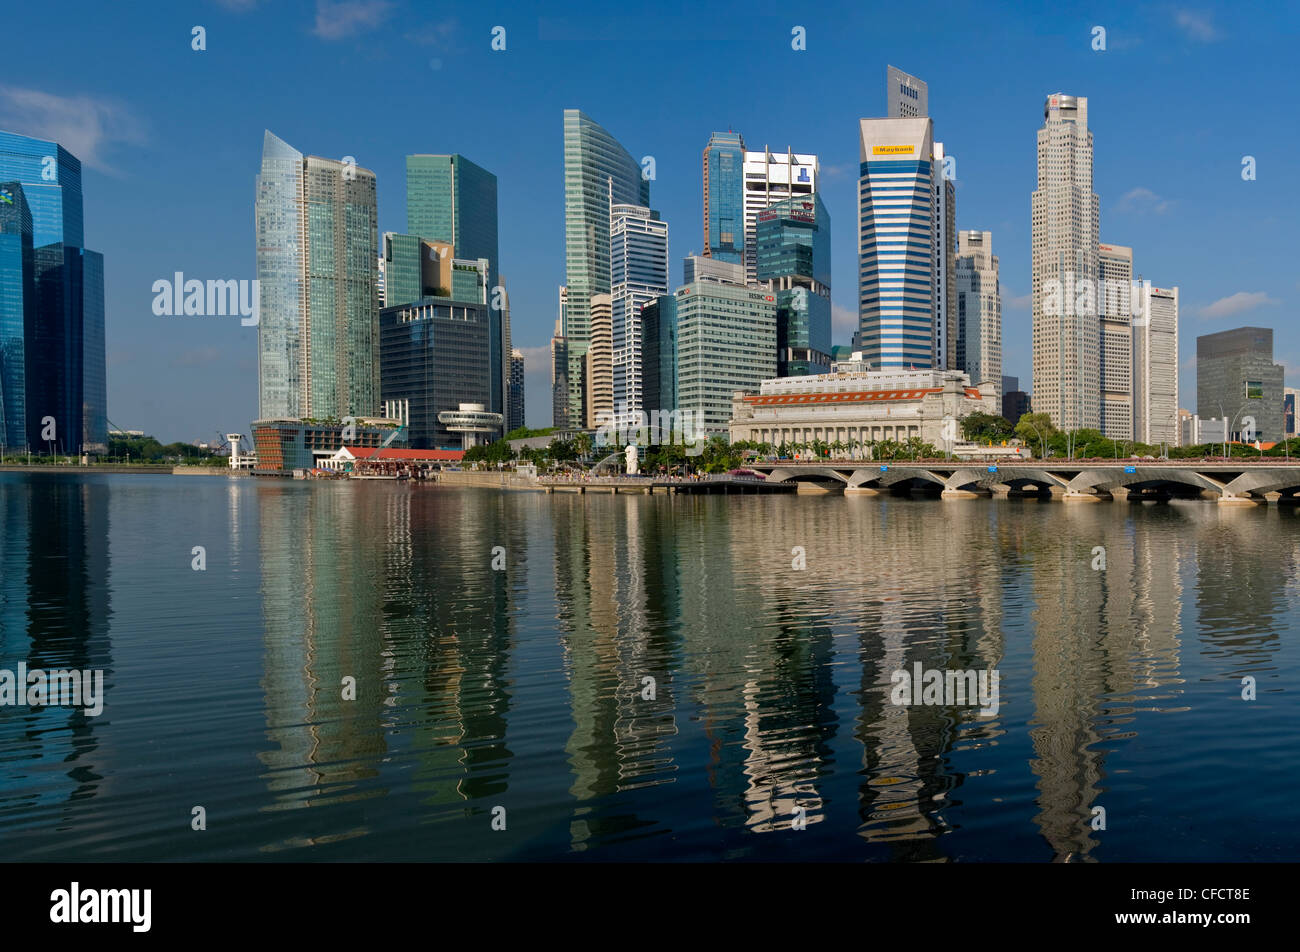 Waterfront facing Marina Bay, with the Fullerton Hotel, previously the Central Post Office, Singapore, Southeast - Stock Image